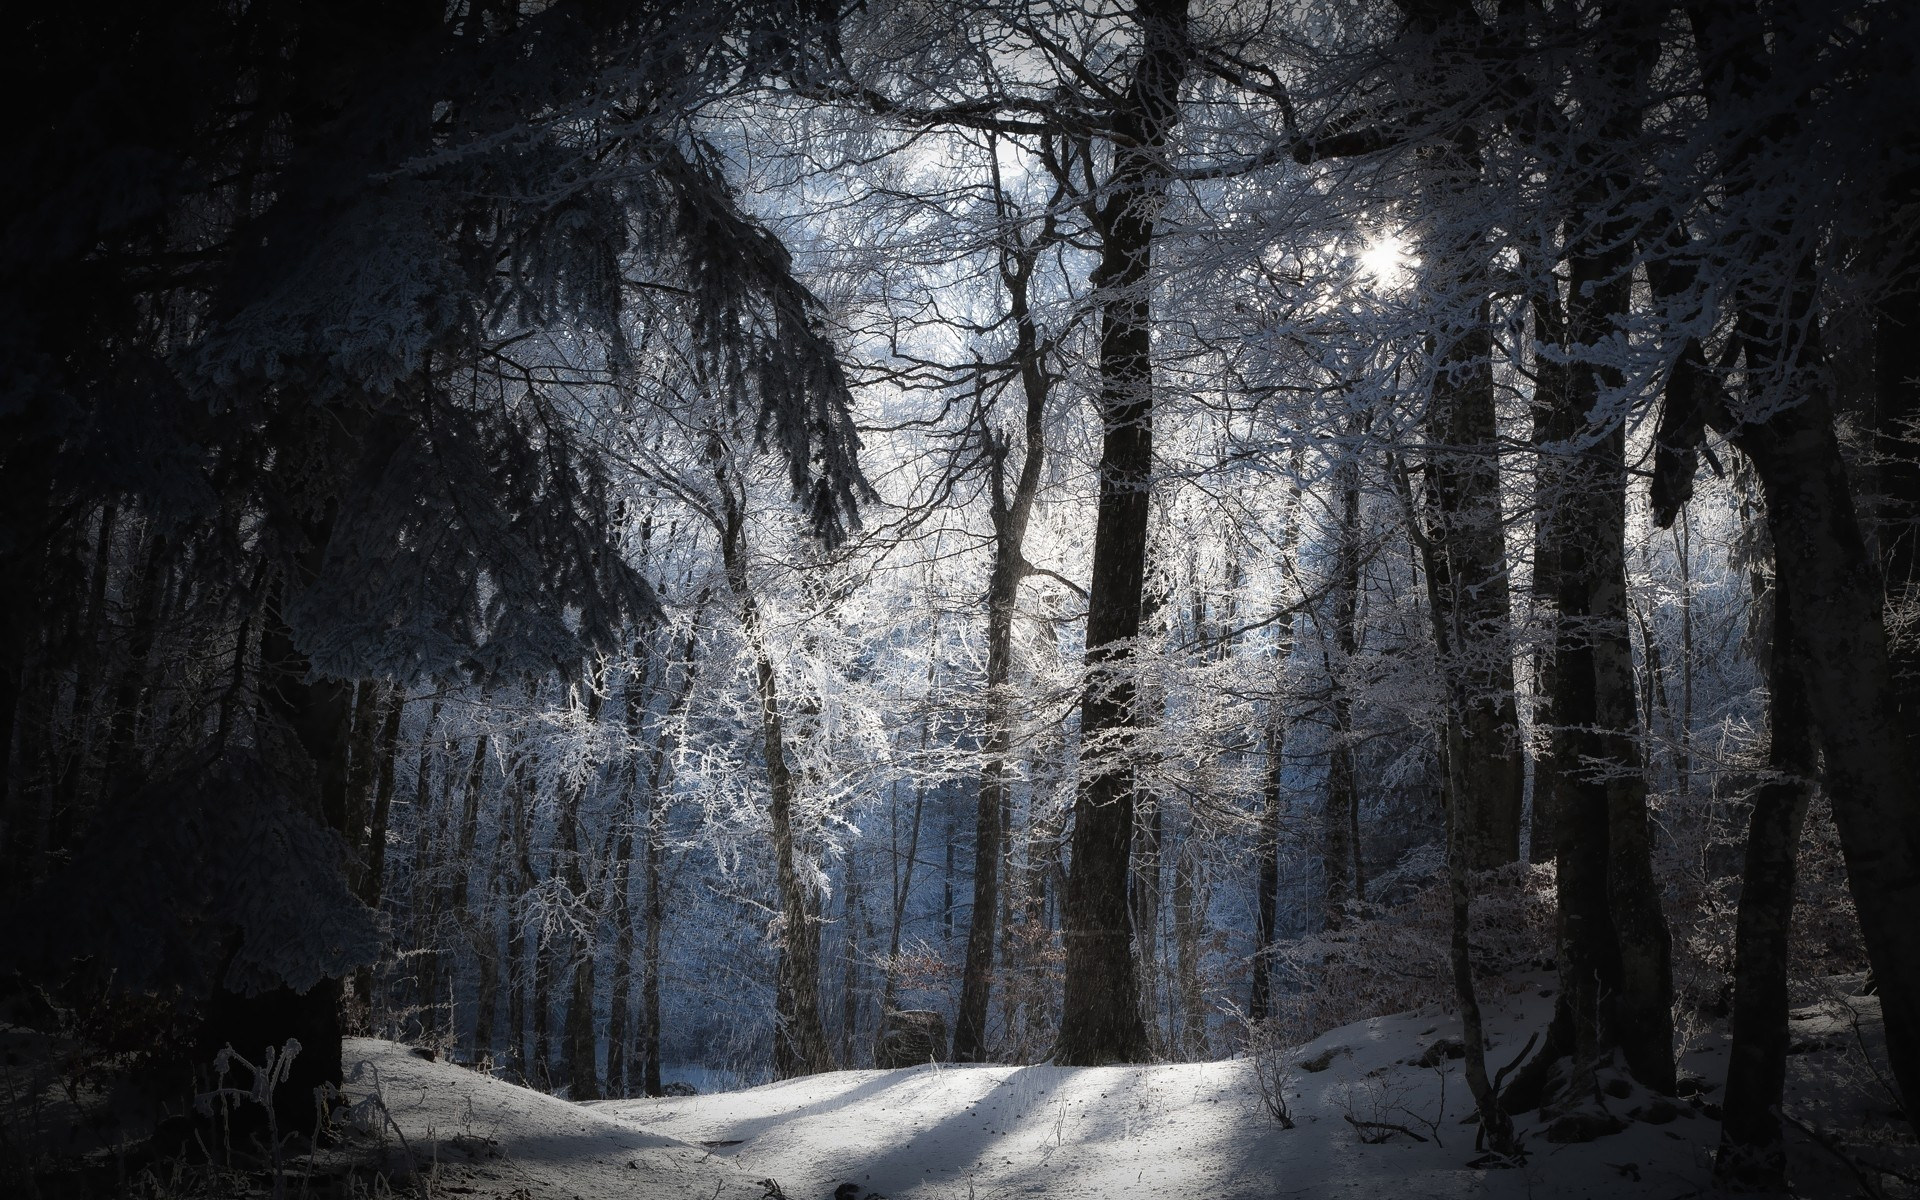 Night Forest Wallpapers High Quality | Download Free